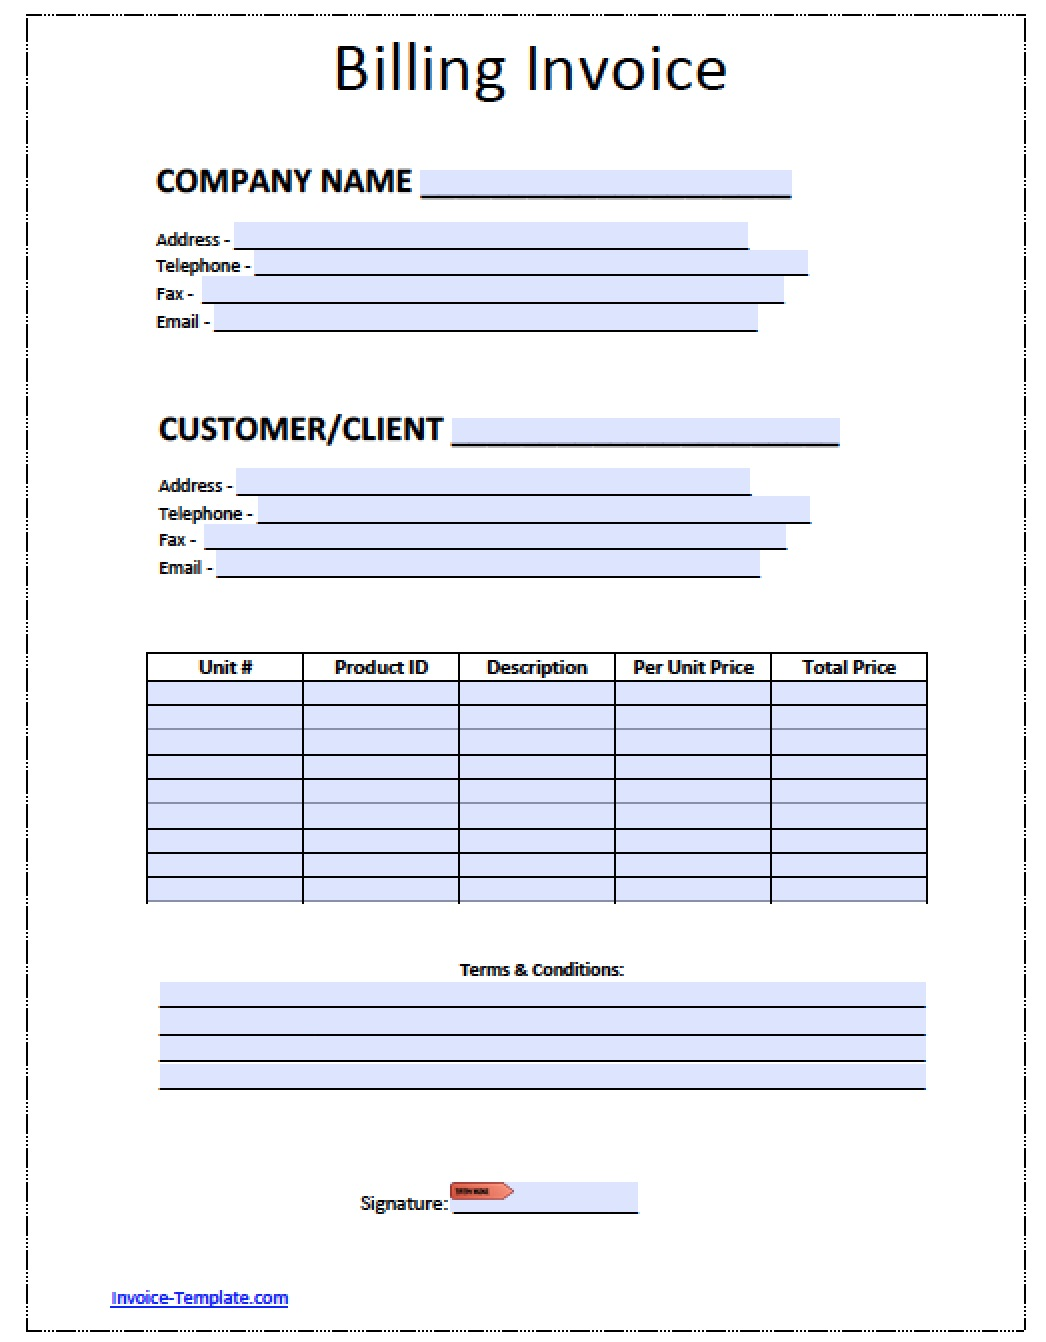 Hucareus  Unusual Billing Invoice Invoices Faq U Cloudflare Support Billing  With Inspiring Free Billing Invoice Template  Excel  Pdf  Word Doc  Billing With Astonishing What Is A Business Tax Receipt Also Receipt Template Free Download In Addition Receipts And Payments Accounts Template And Walmart Receipt Cash Back As Well As Read Receipt Mac Mail Additionally Hotel Receipt Generator From Happytomco With Hucareus  Inspiring Billing Invoice Invoices Faq U Cloudflare Support Billing  With Astonishing Free Billing Invoice Template  Excel  Pdf  Word Doc  Billing And Unusual What Is A Business Tax Receipt Also Receipt Template Free Download In Addition Receipts And Payments Accounts Template From Happytomco